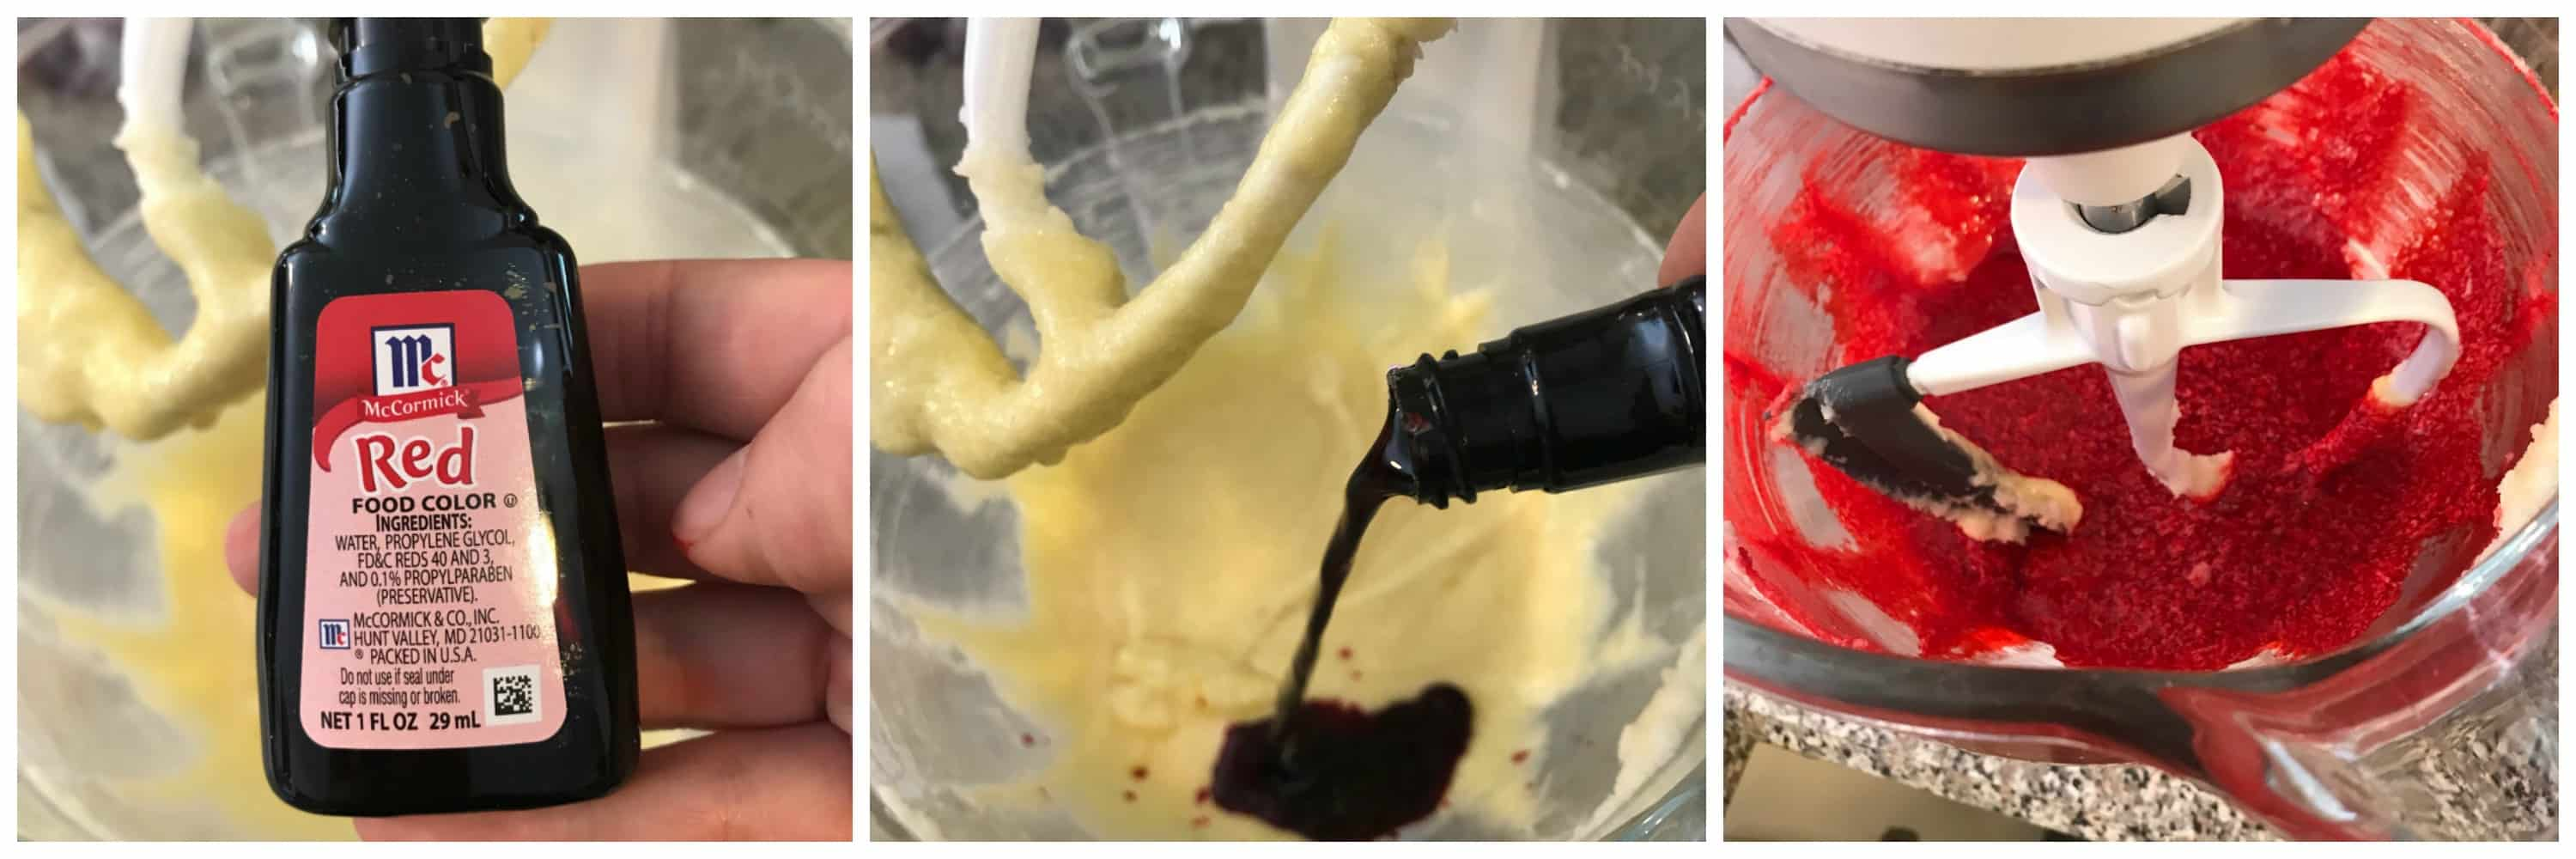 red food coloring added to creamed mixture